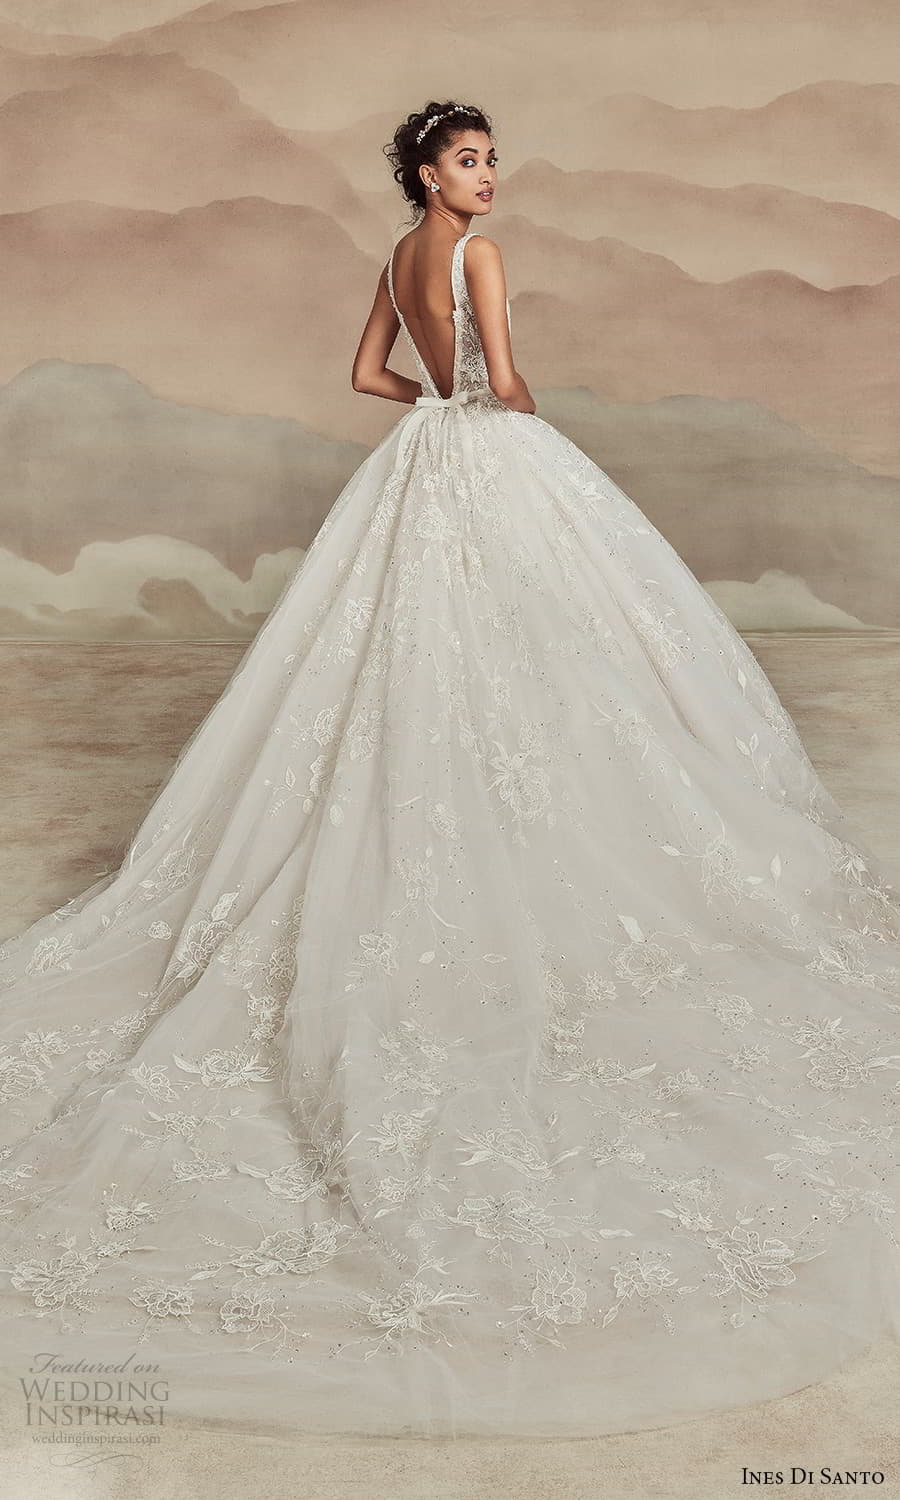 ines di santo spring 2022 bridal sleeveless straps plunging v neckline fully embellished a line ball gown wedding dress chapel train (8) bv